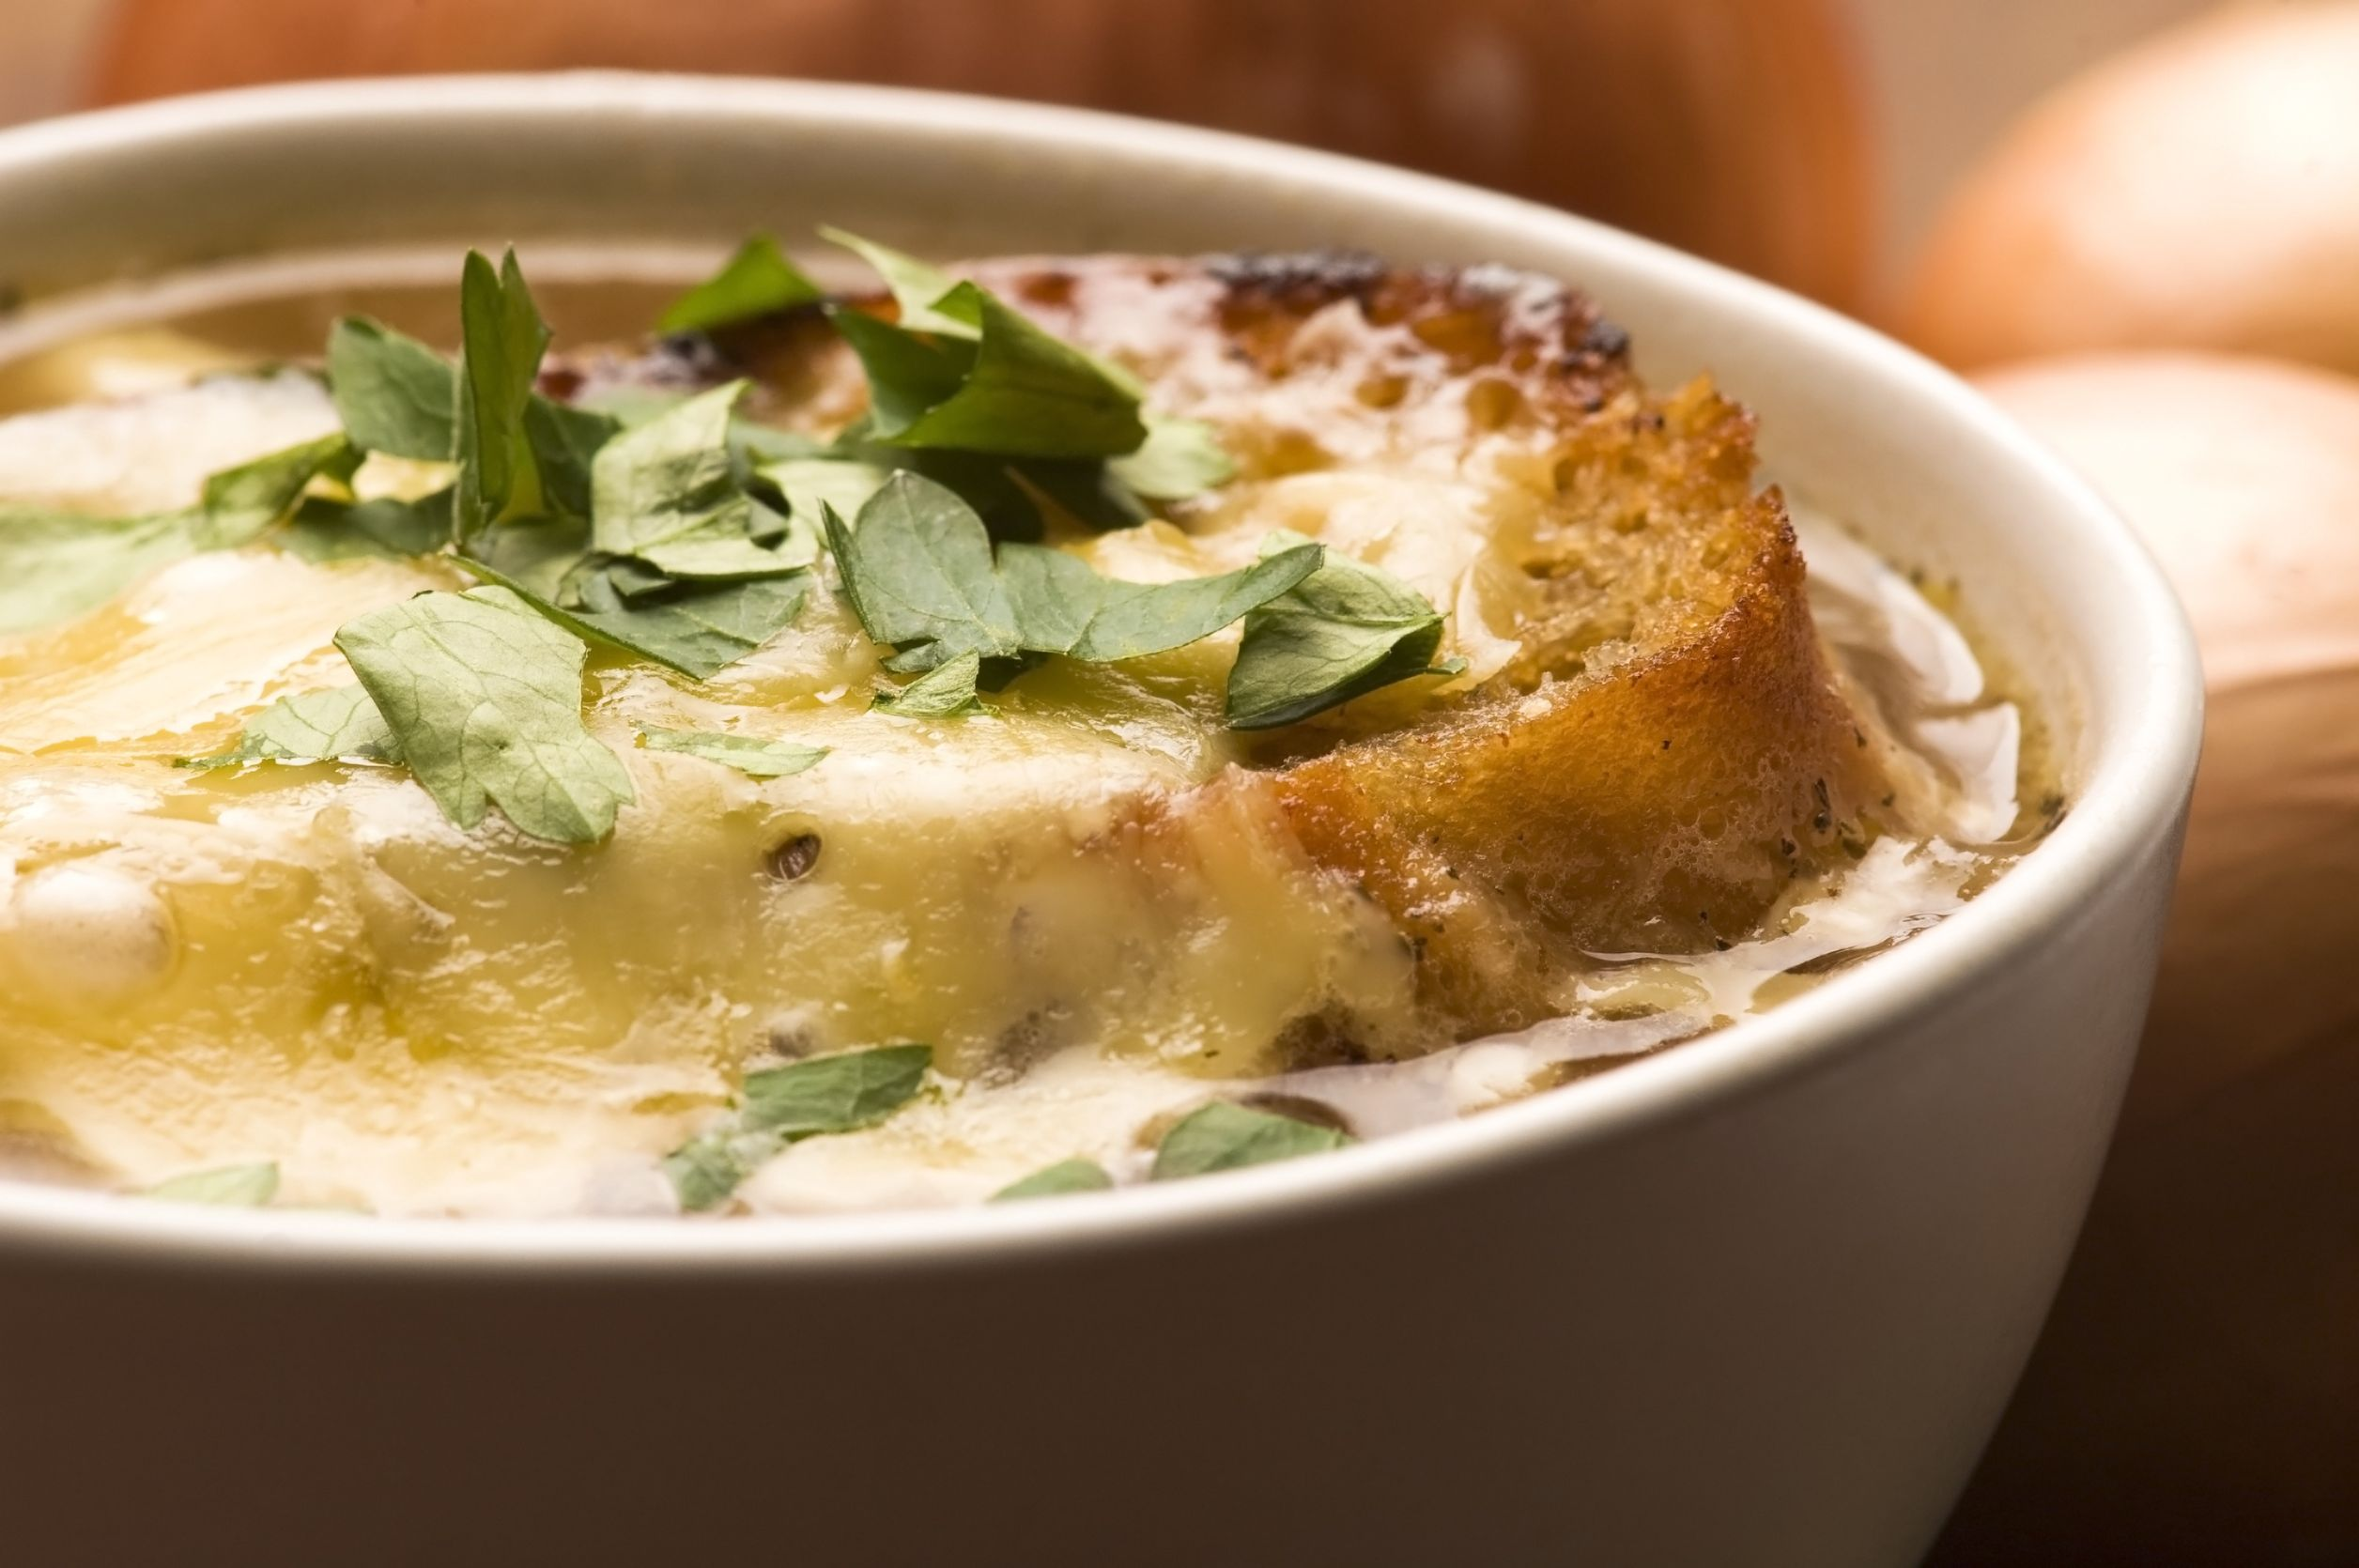 French Onion Soup Used To Take Forever To Make, But Not Anymore…